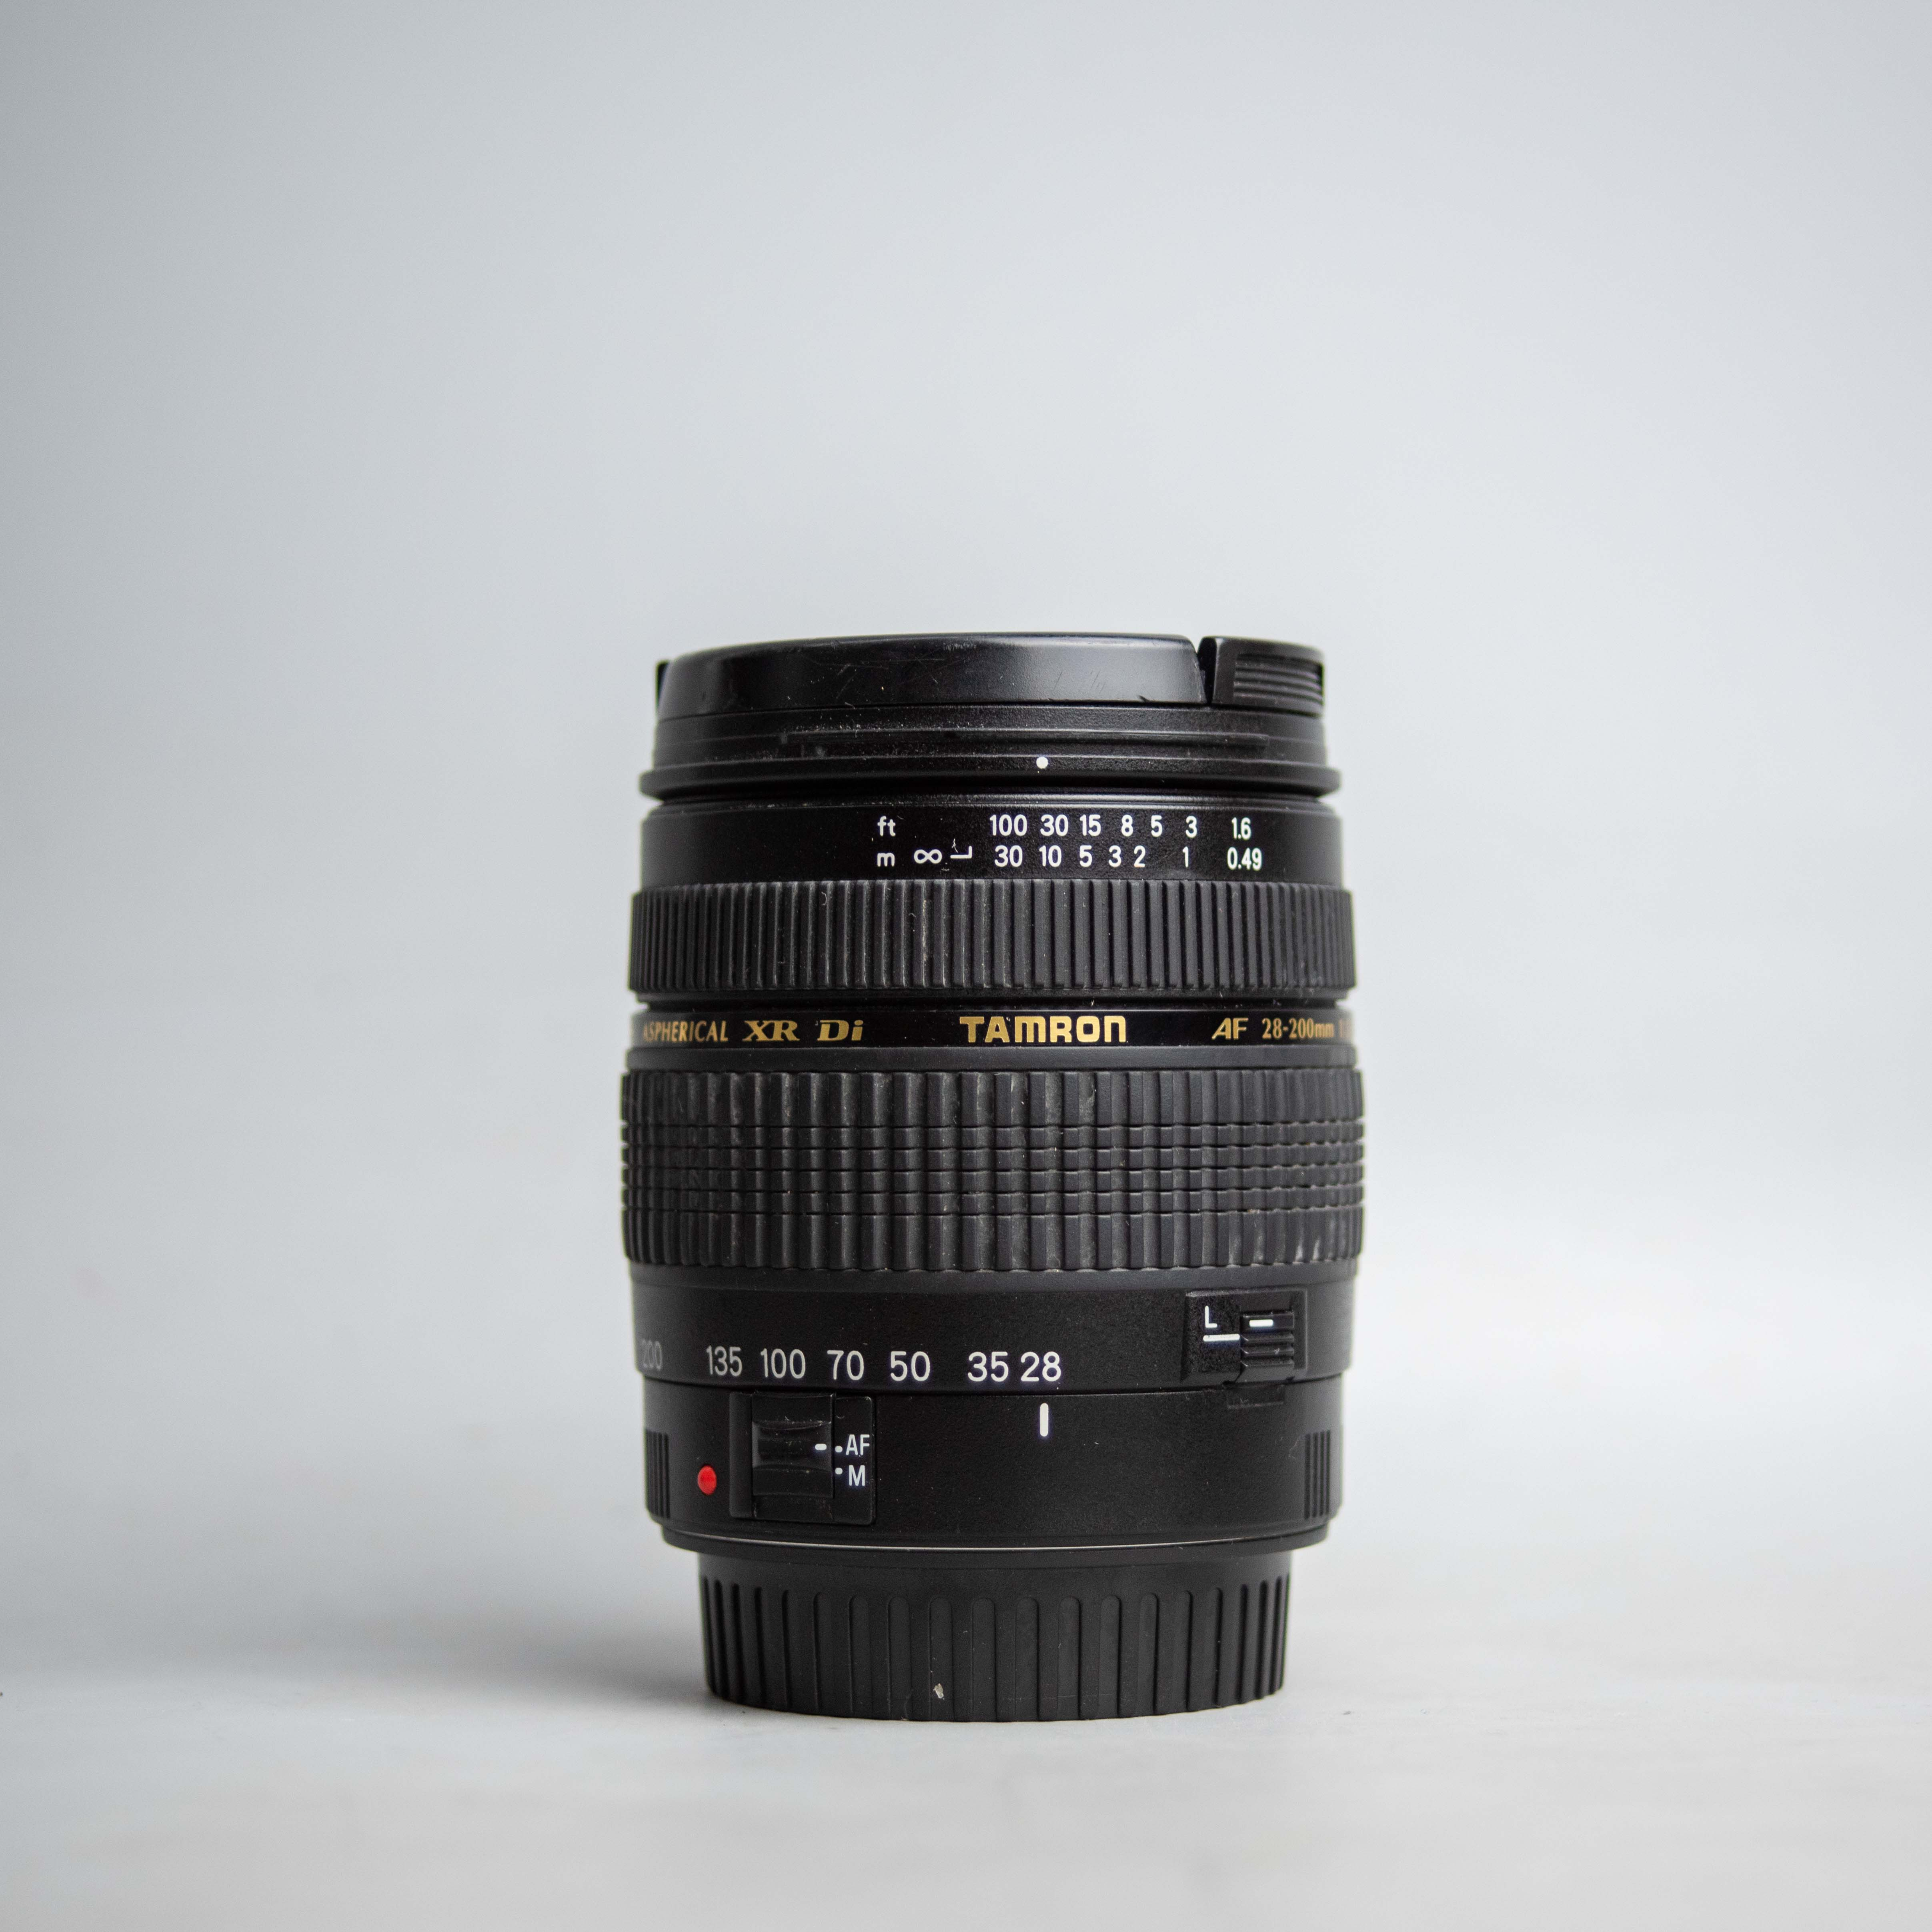 tamron-28-200mm-f3-8-5-6-aspherical-xr-if-af-canon-28-300-3-8-5-6-17436